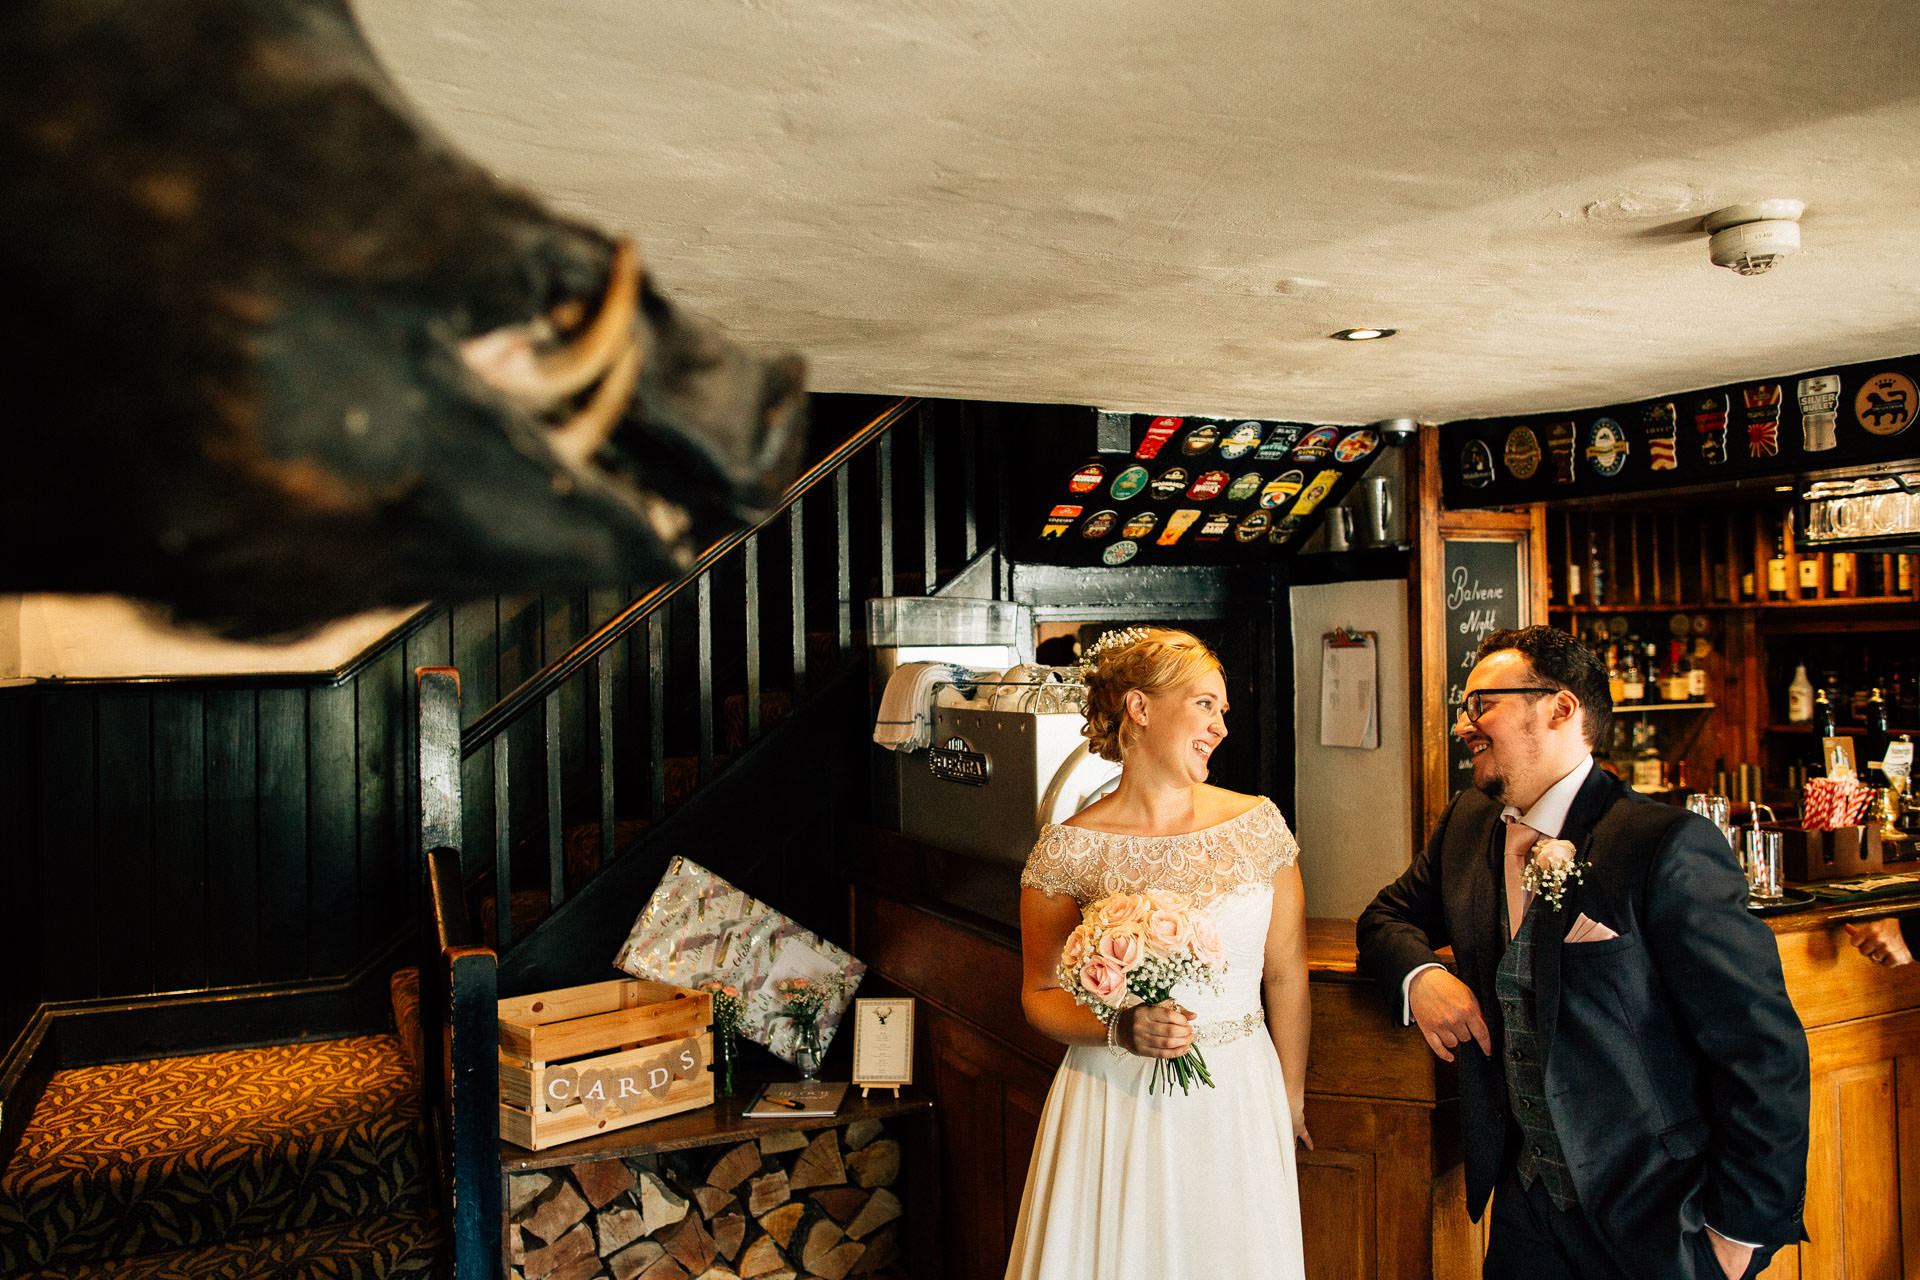 The Wild Boar Wedding Photography - EM - bride and groom waiting to enter the room